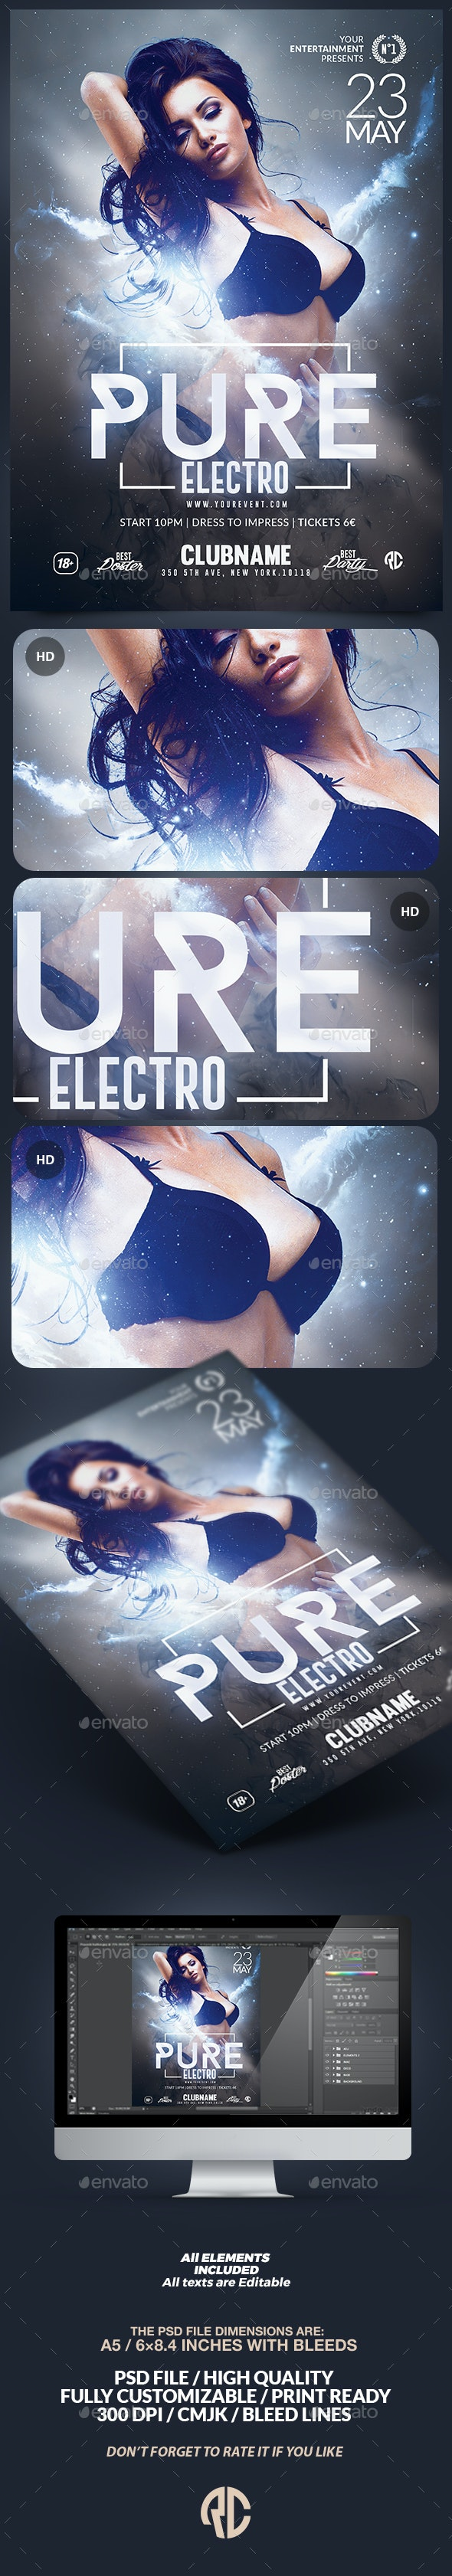 Pure Electro Flyer   Psd Template - Clubs & Parties Events